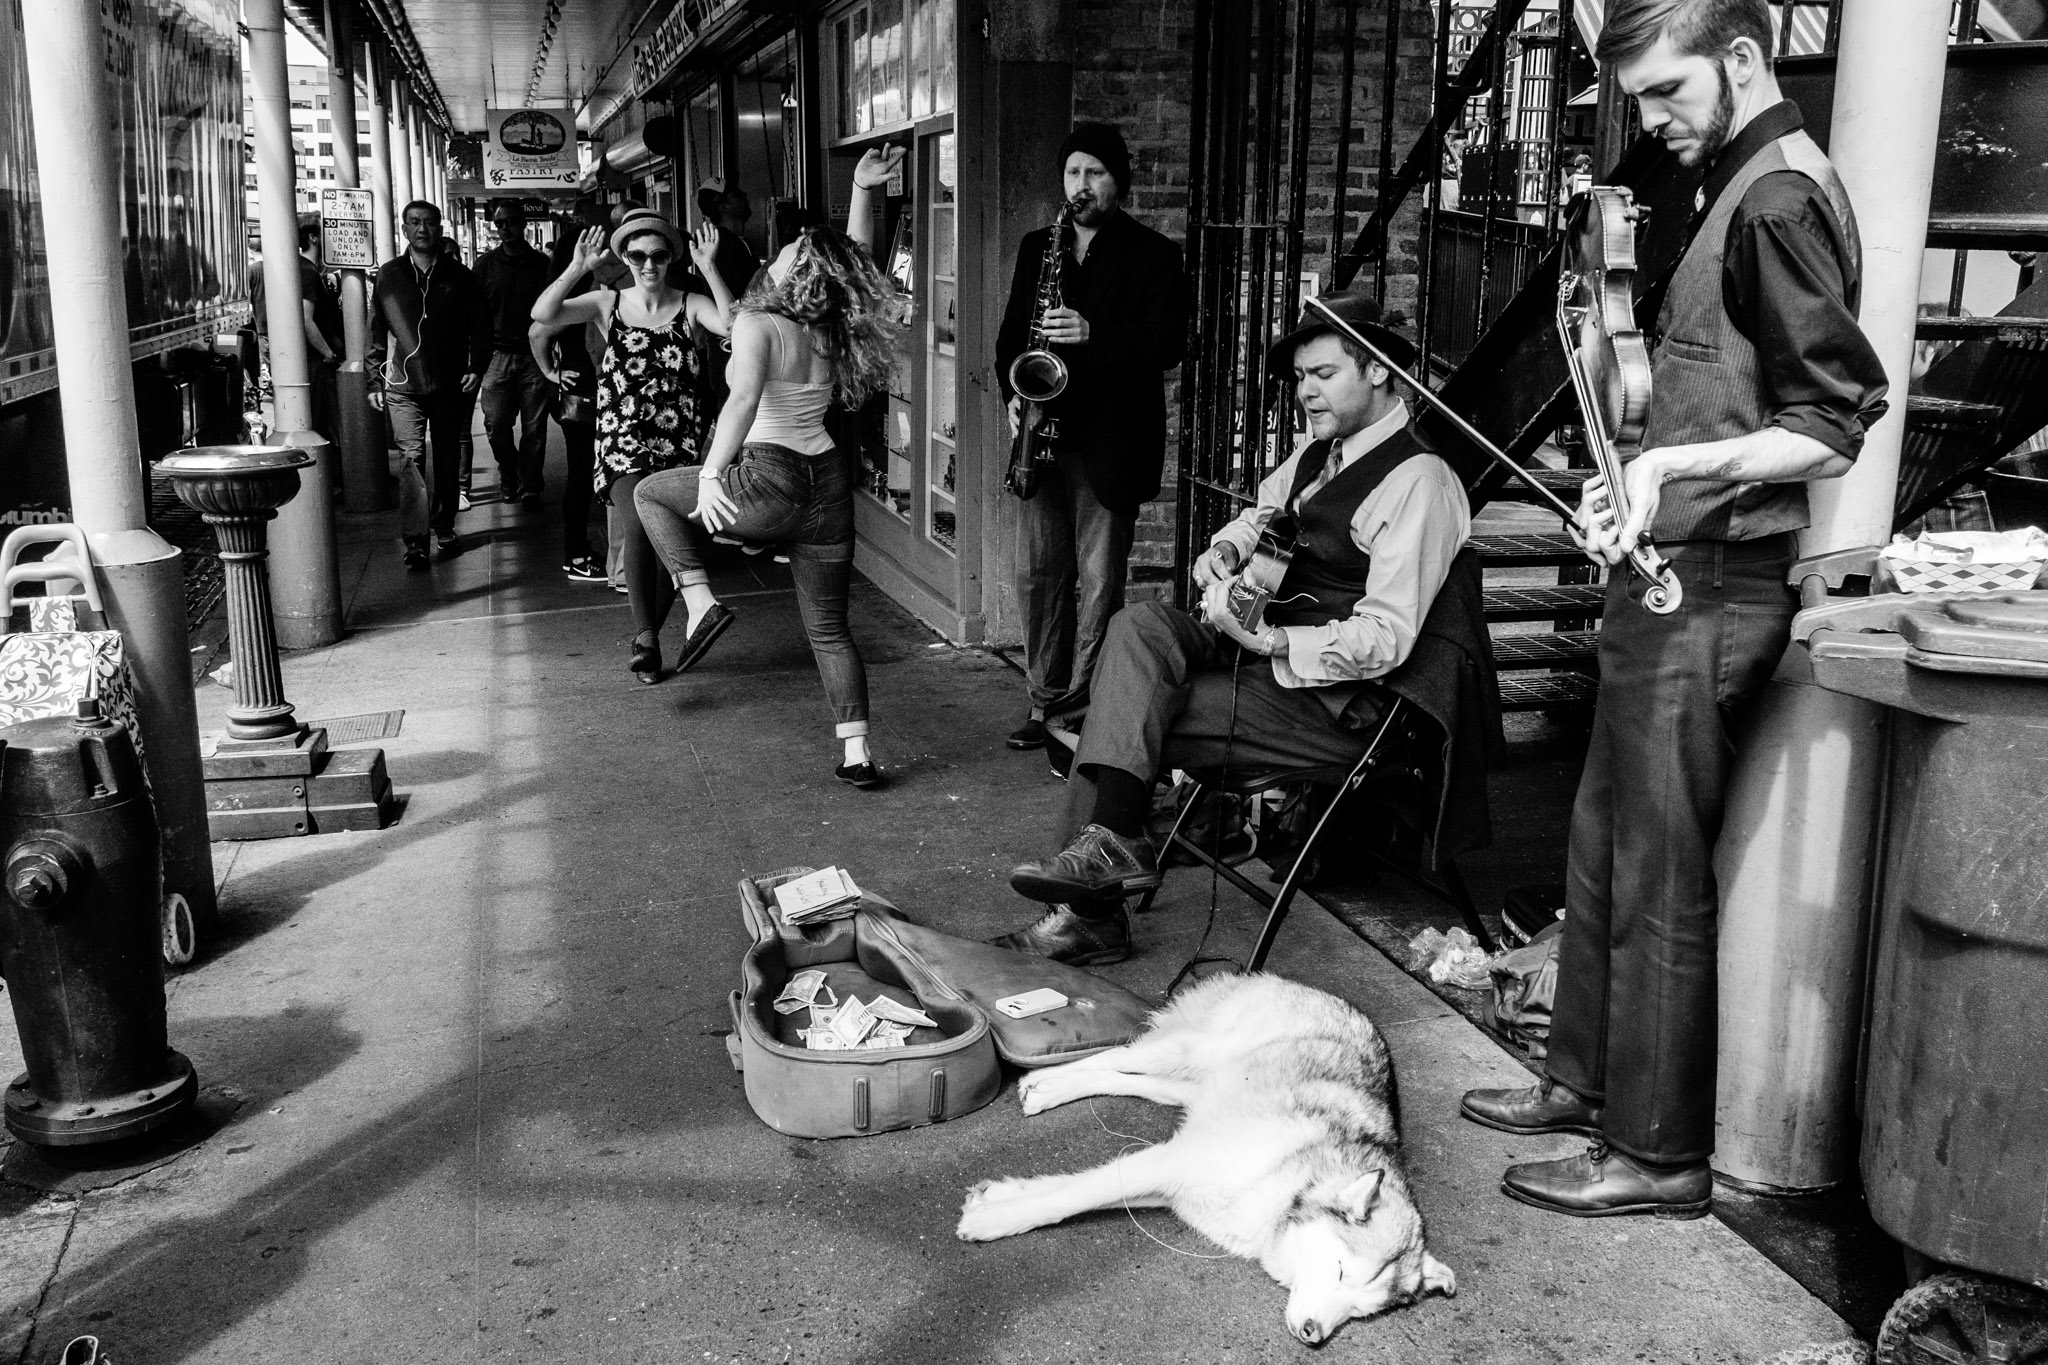 Speakeasy Jazz Cats at Pike Place Market. Seattle, WA. May 2017. (Photo by Danny Ngan.)